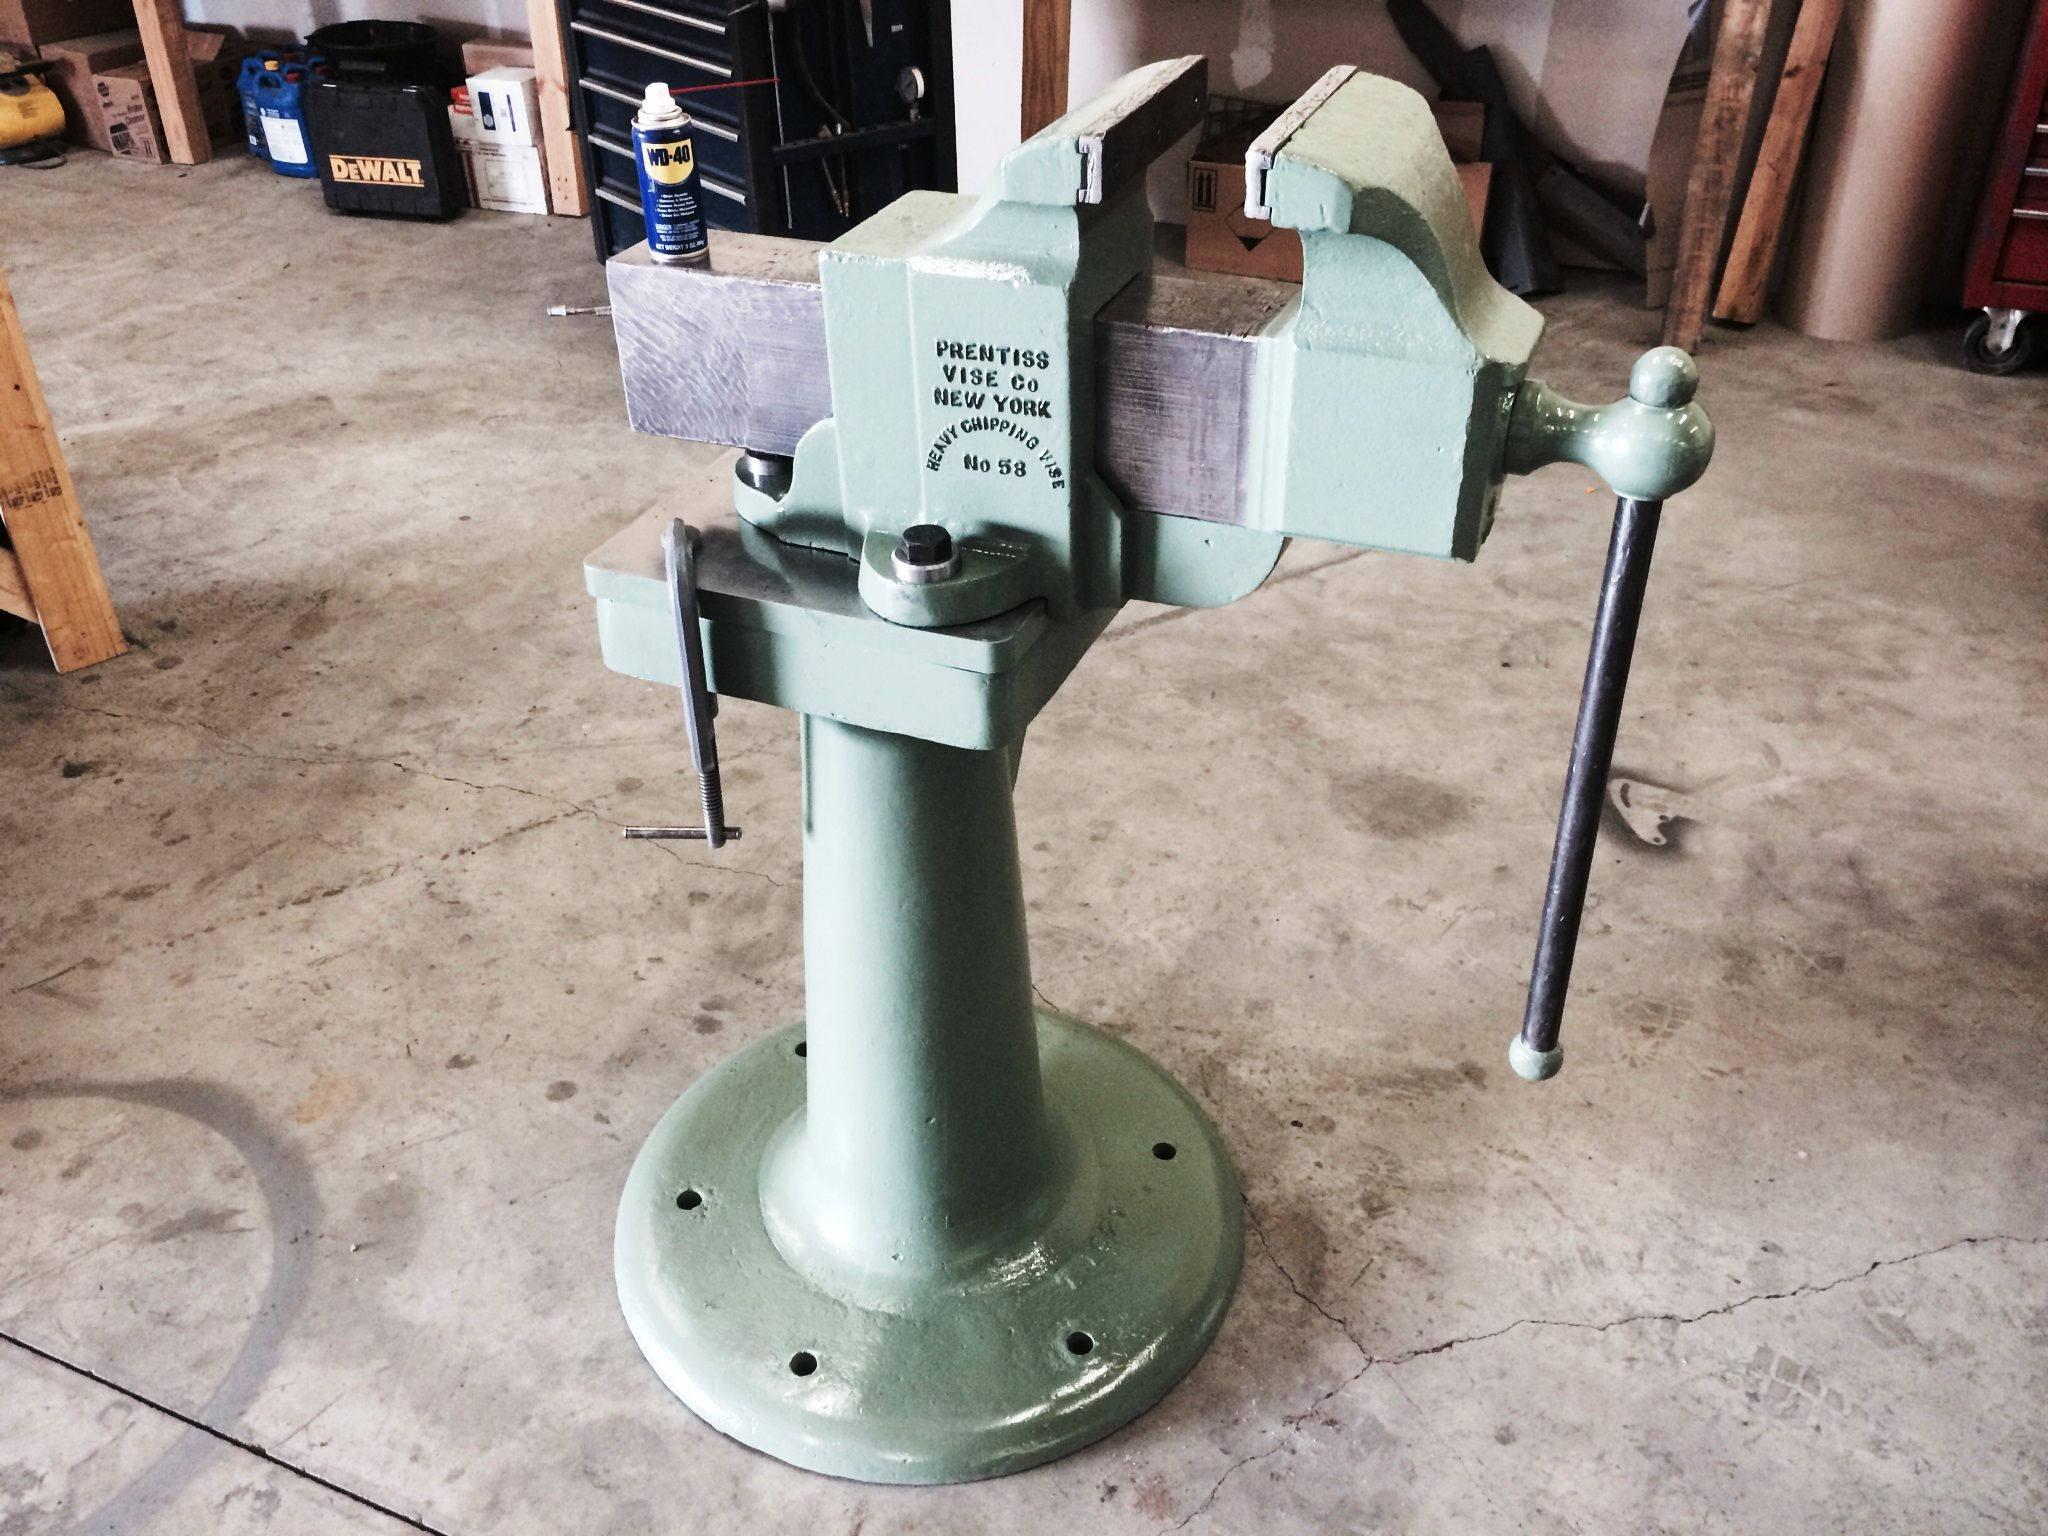 Here Is A Restored Prentiss 58 On A Actual Vise Stand